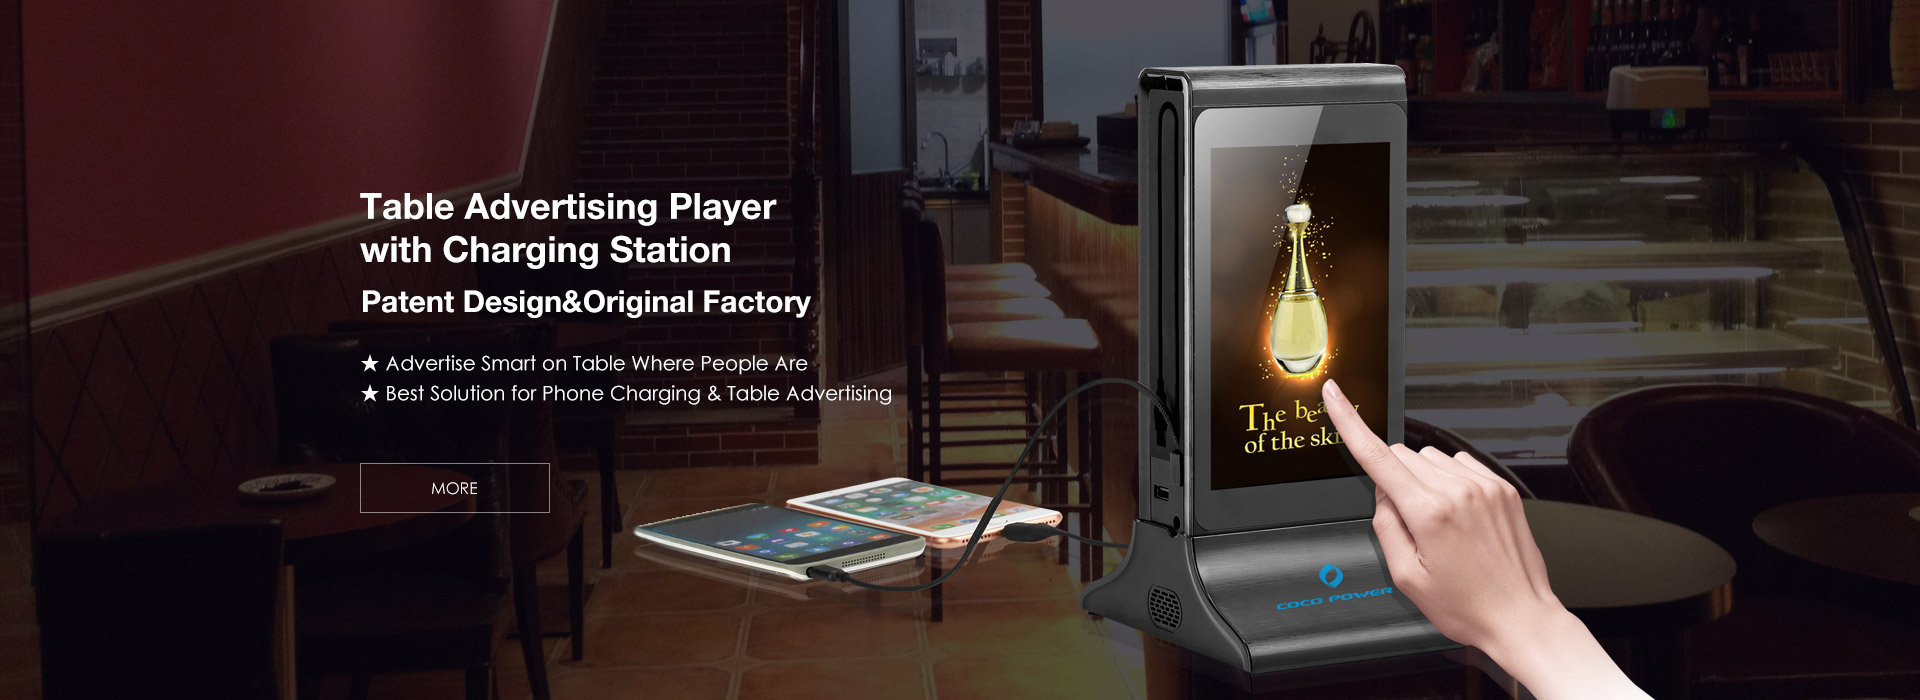 Coco Power Table Advertising Player